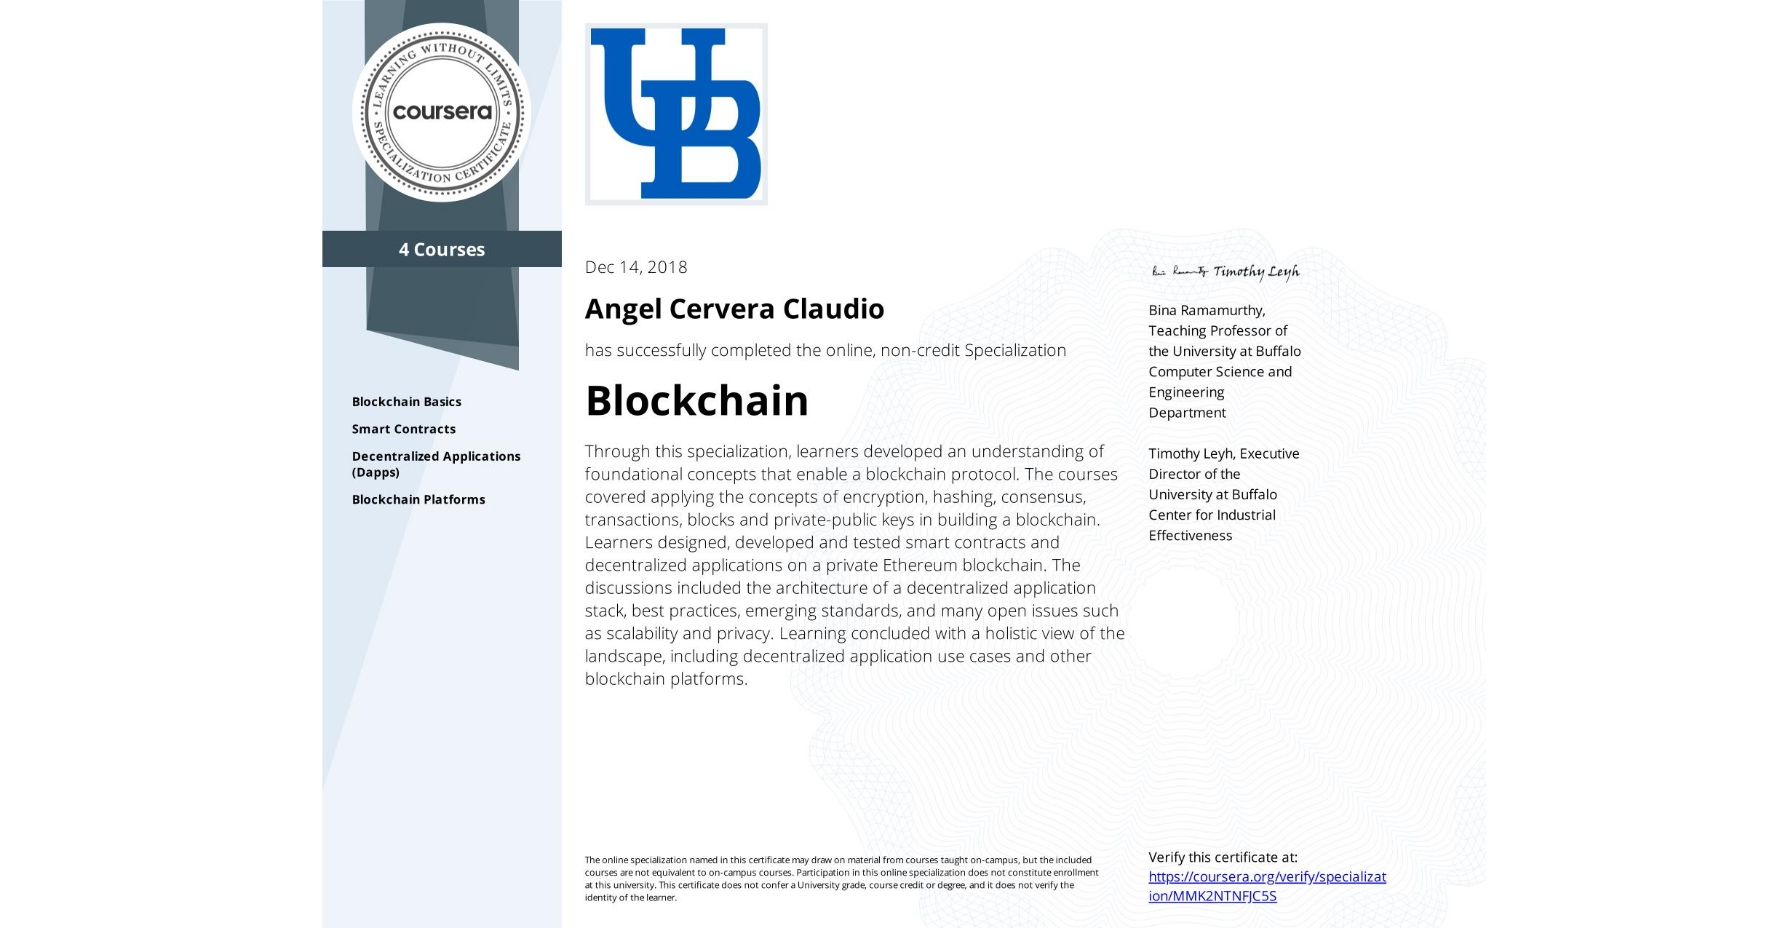 View certificate for Angel Cervera Claudio, Blockchain, offered through Coursera. Through this specialization, learners developed an understanding of foundational concepts that enable a blockchain protocol. The courses covered applying the concepts of encryption, hashing, consensus, transactions, blocks and private-public keys in building a blockchain. Learners designed, developed and tested smart contracts and decentralized applications on a private Ethereum blockchain. The discussions included the architecture of a decentralized application stack, best practices, emerging standards, and many open issues such as scalability and privacy. Learning concluded with a holistic view of the landscape, including decentralized application use cases and other blockchain platforms.